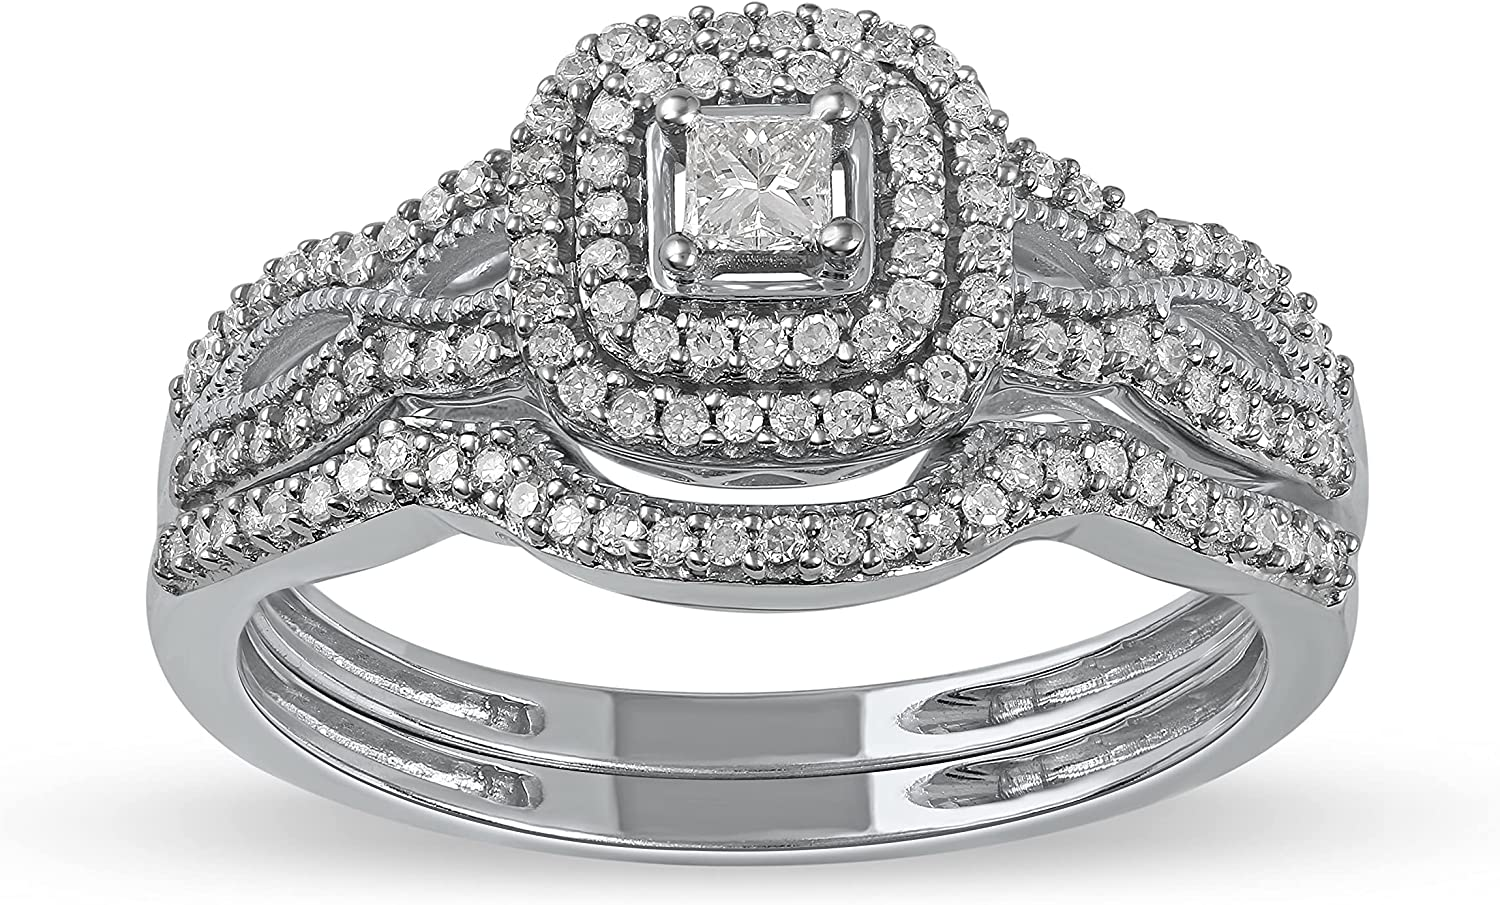 IGI Credence Certified 10k Gold 3 8Ct Se Ring Inventory cleanup selling sale Diamond TDW Halo Engagement